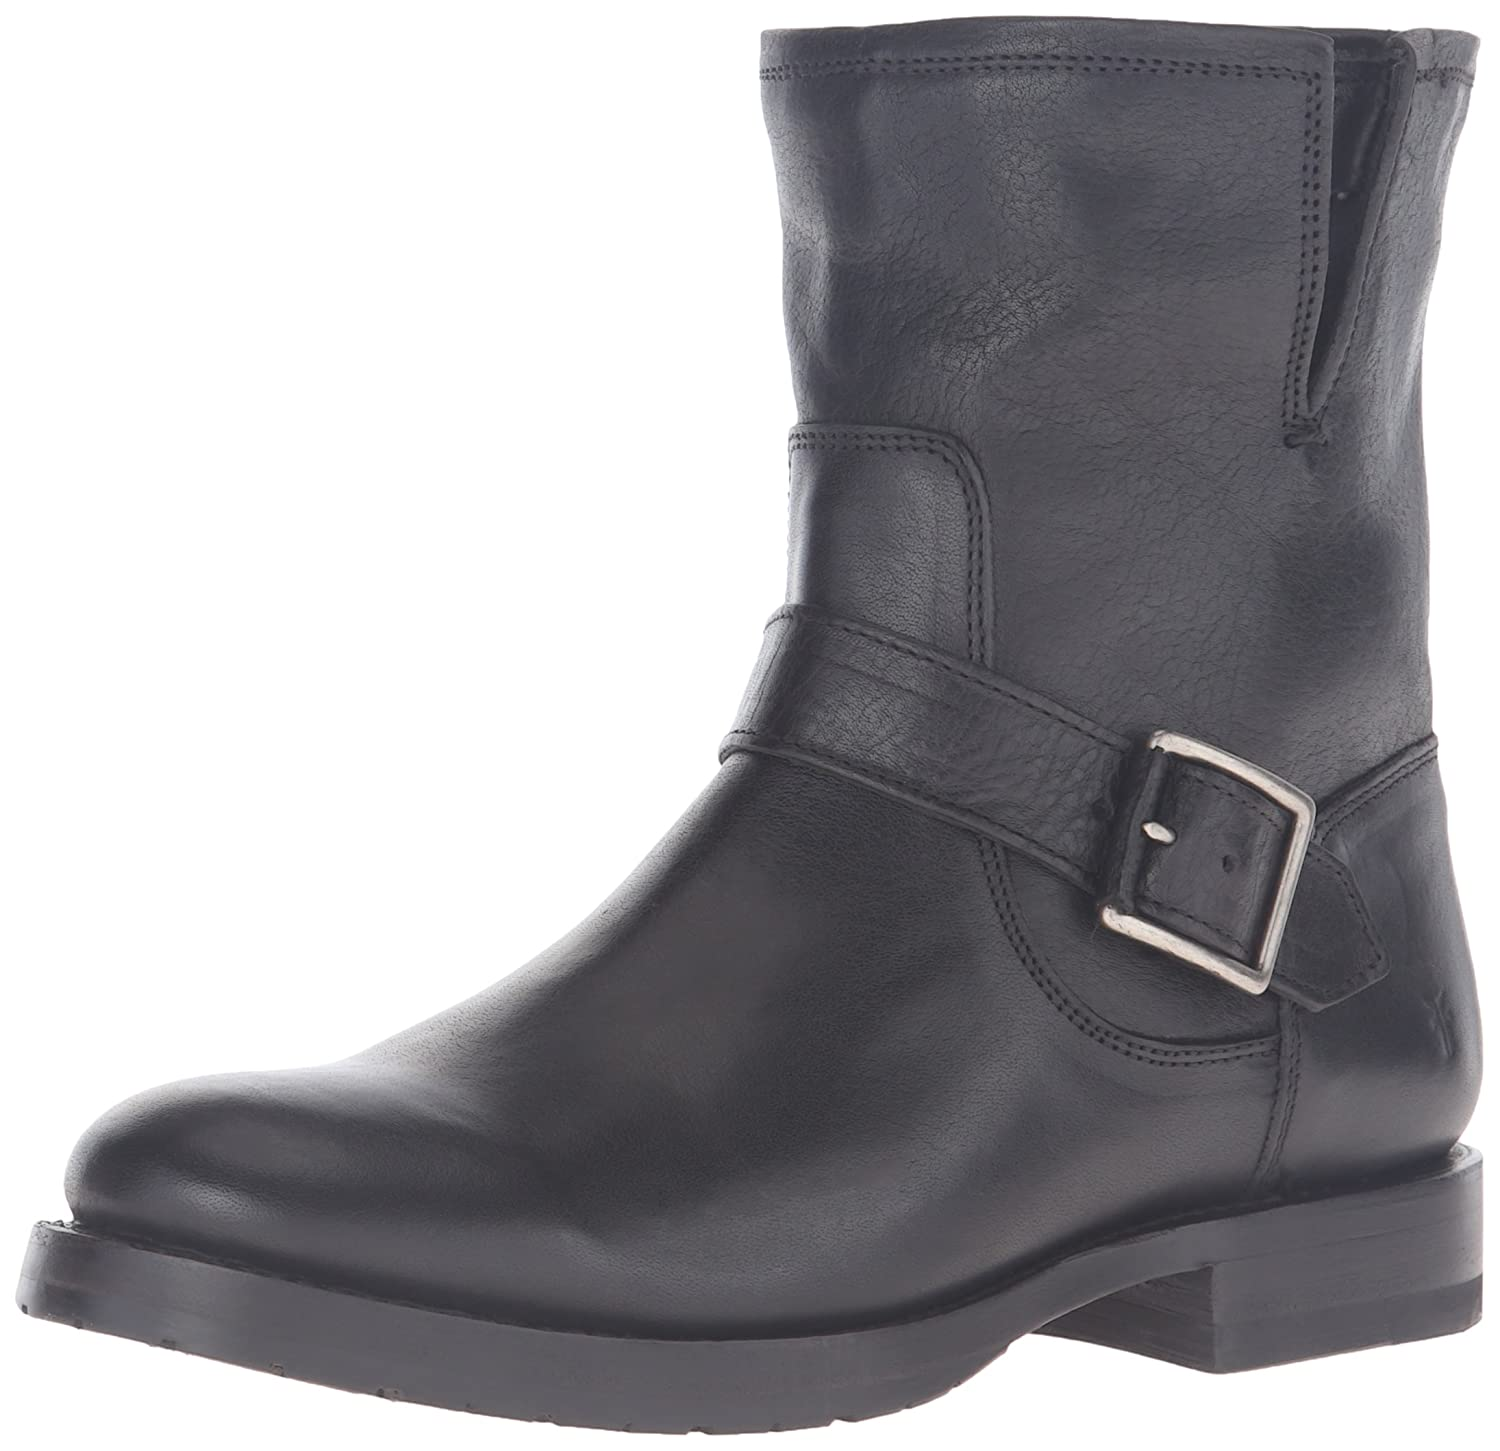 FRYE Women's Natalie Short Engineer Boot B0193YX474 7.5 B(M) US|Black